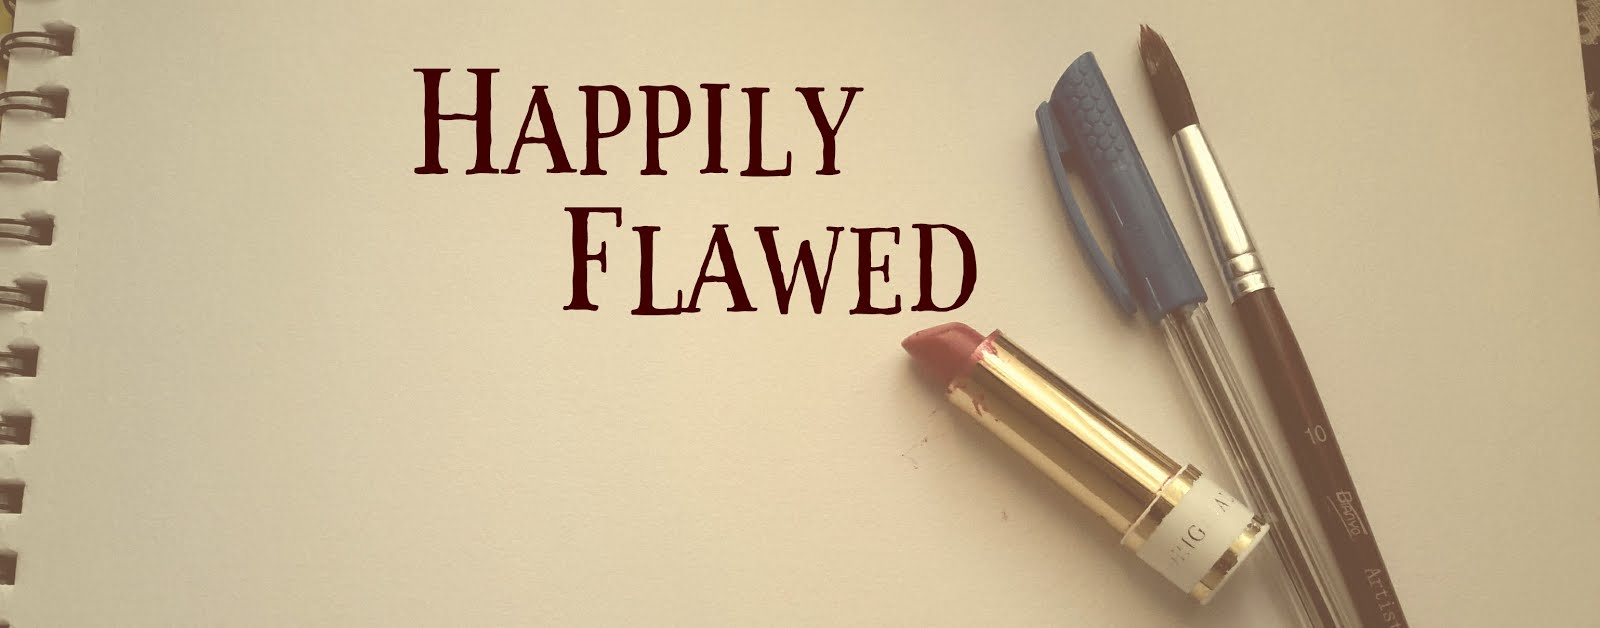 Happily Flawed